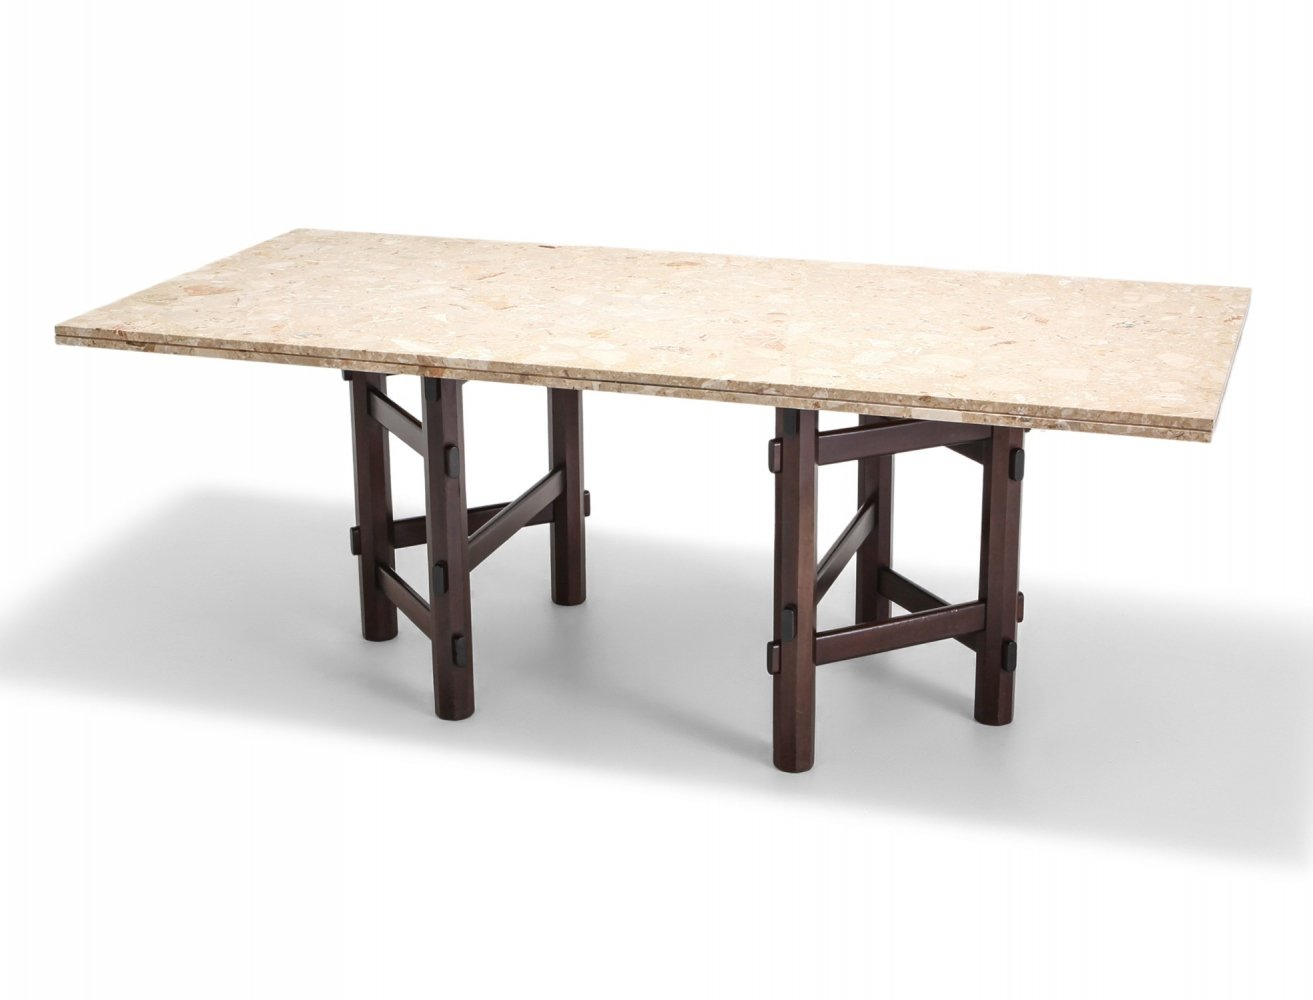 Modern Terazzo Marble Dining Table by Jan Vlug, Belgium 1970s